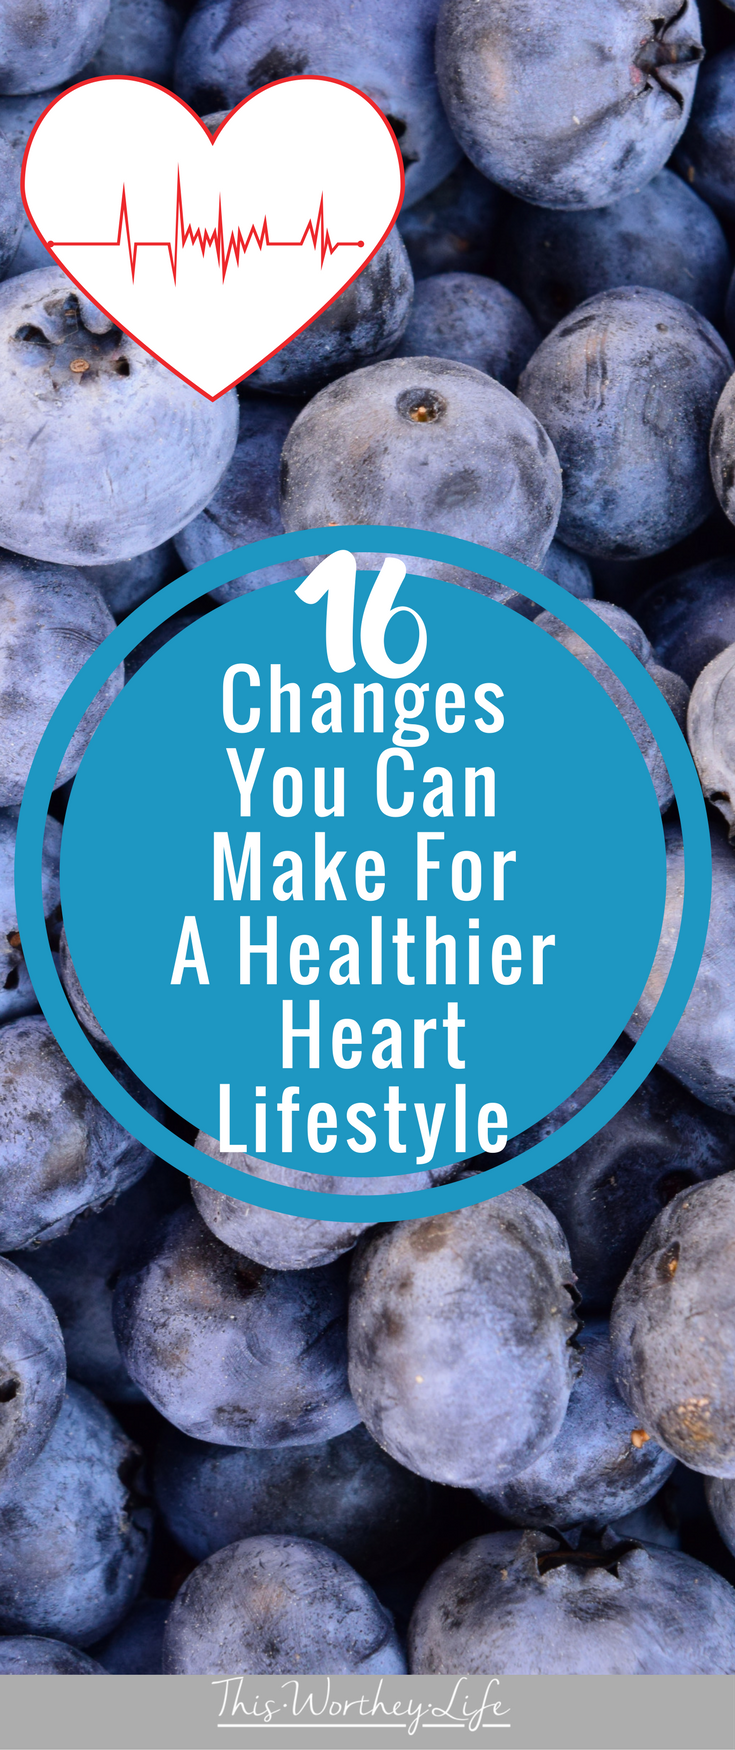 Heart disease runs in my family faster than a speeding bullet. With my heart at-risk, there are many lifestyle changes I've had to make for a healthier heart. I'm sharing changes you can make for a healthier heart lifestyle- because, at the end of the day, your heart depends on it! #AD